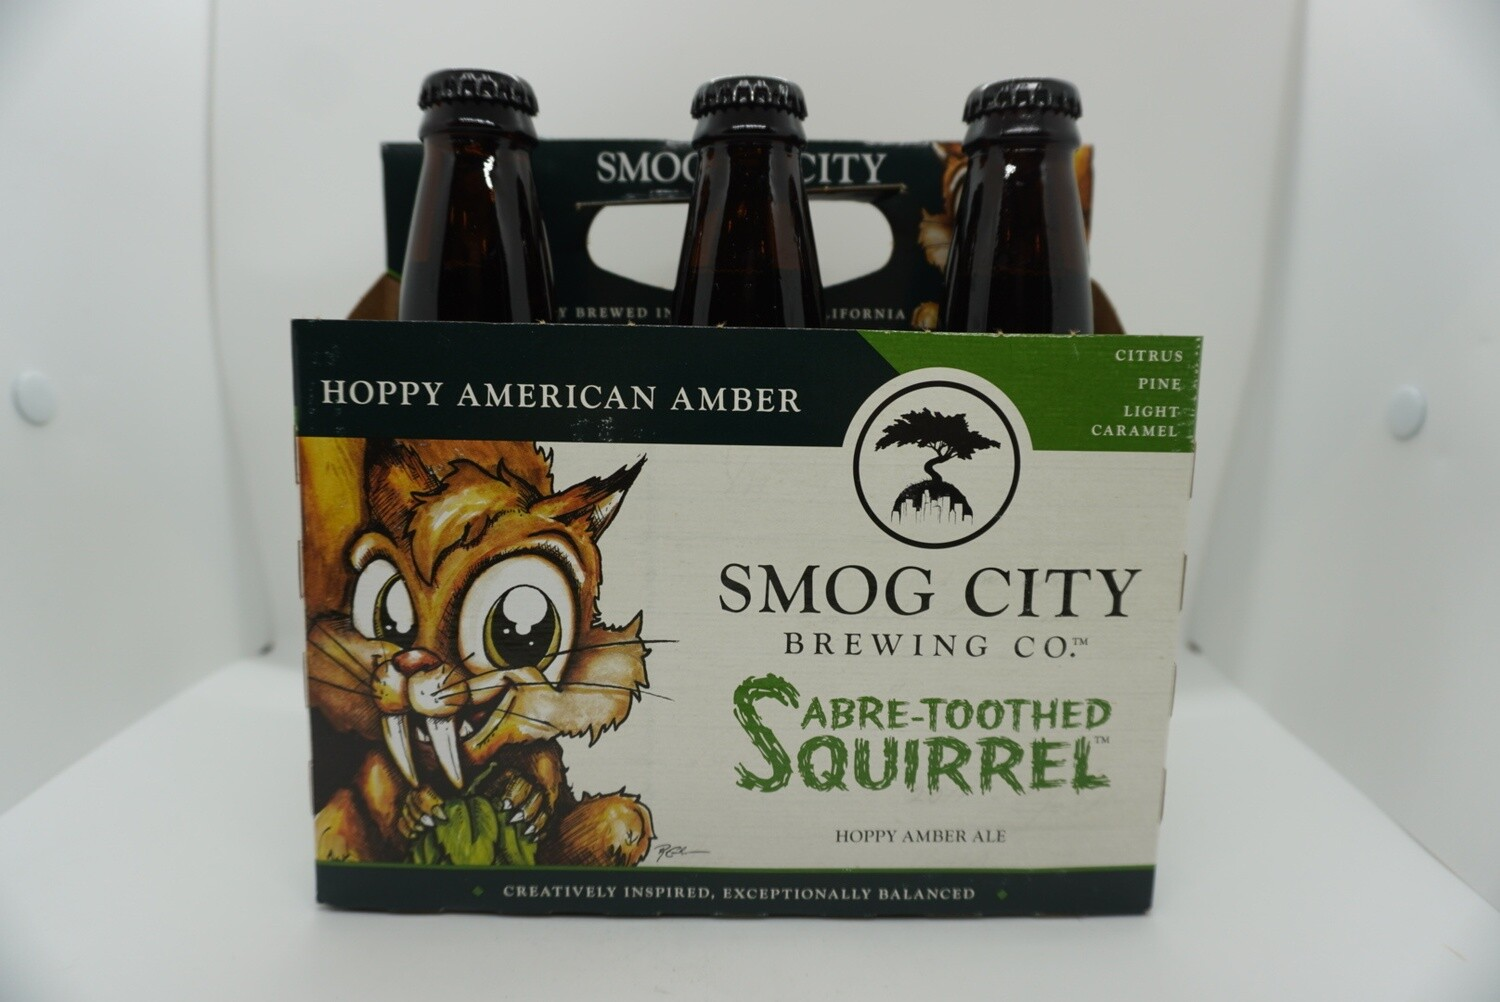 Smog City - Saber-Toothed Squirrel - Hoppy Amber Ale - 7% ABV - 6 Pack Bottles